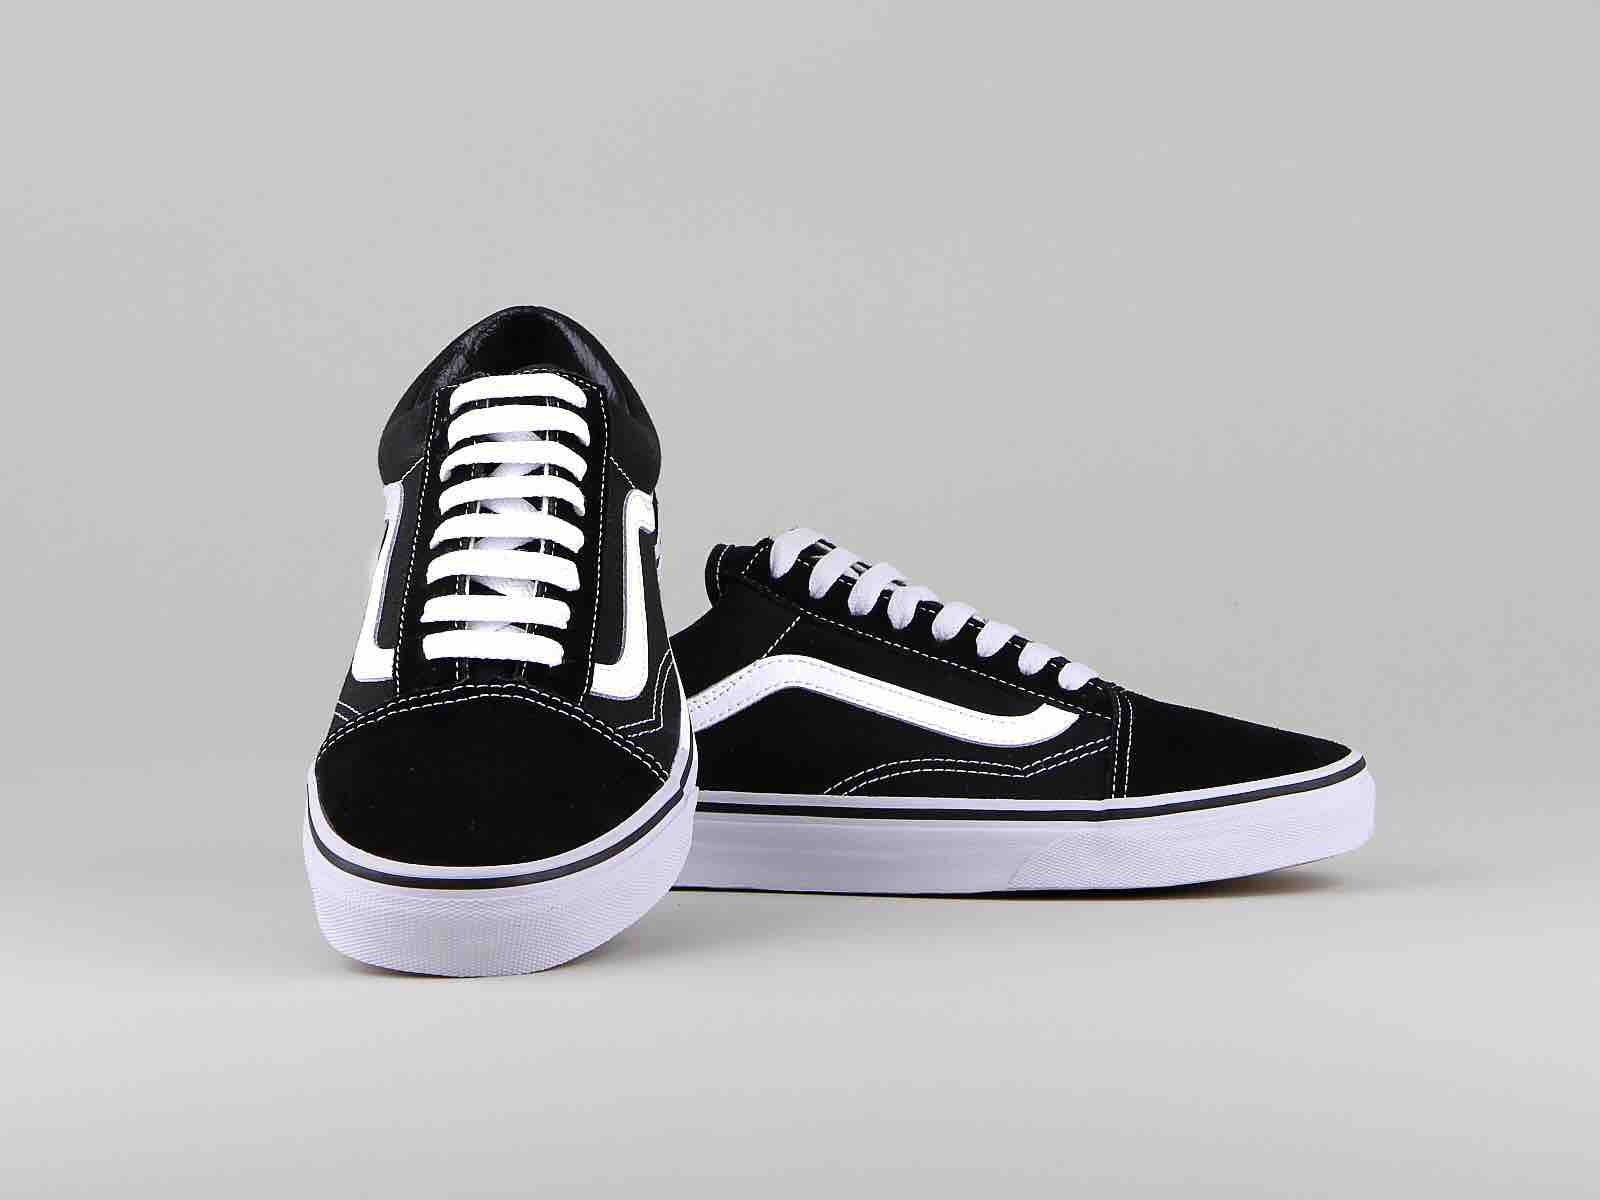 Chaussures Homme Vans Old Skool Willy neuf et occasion au ...